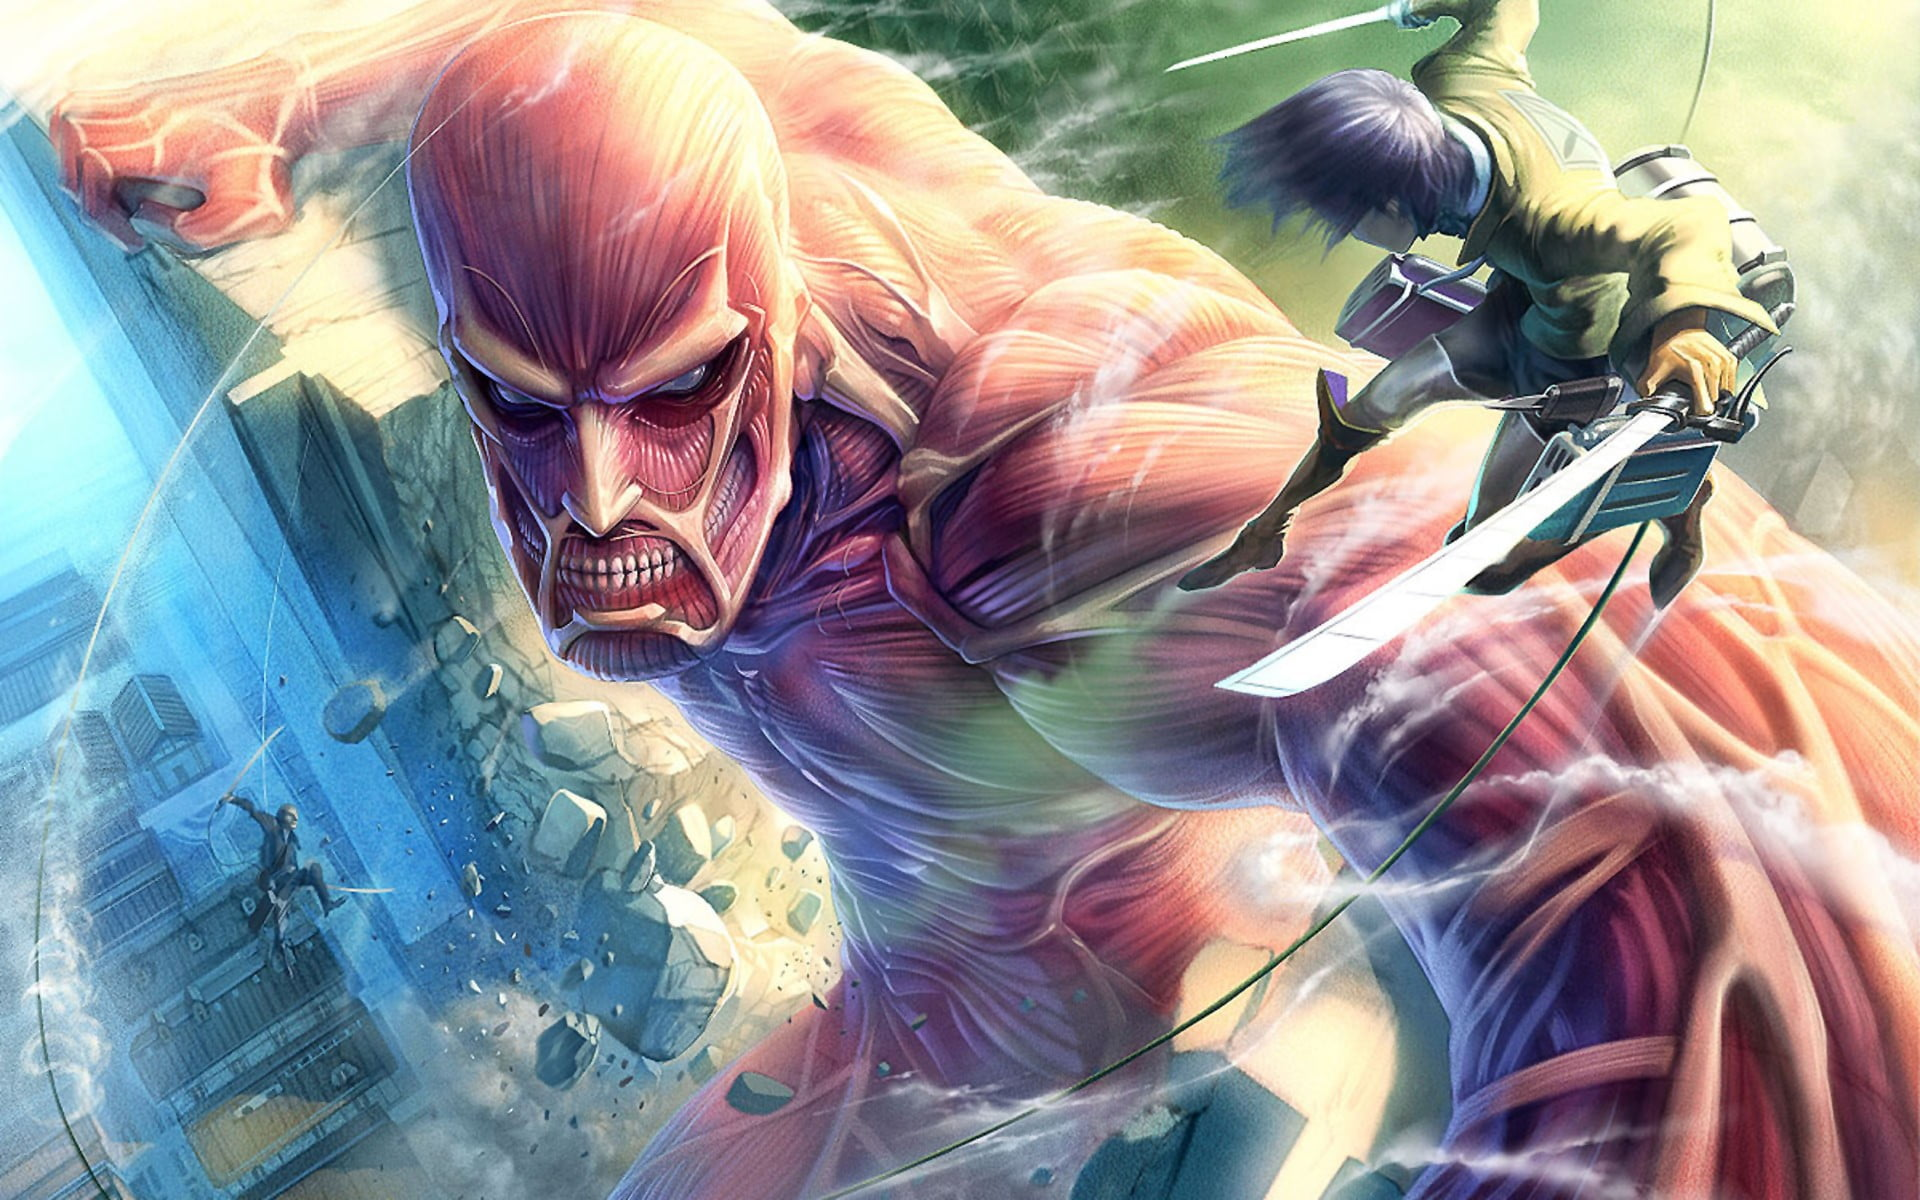 Attack on Titan 132 Release Date, Raw Scans and Manga Read Online